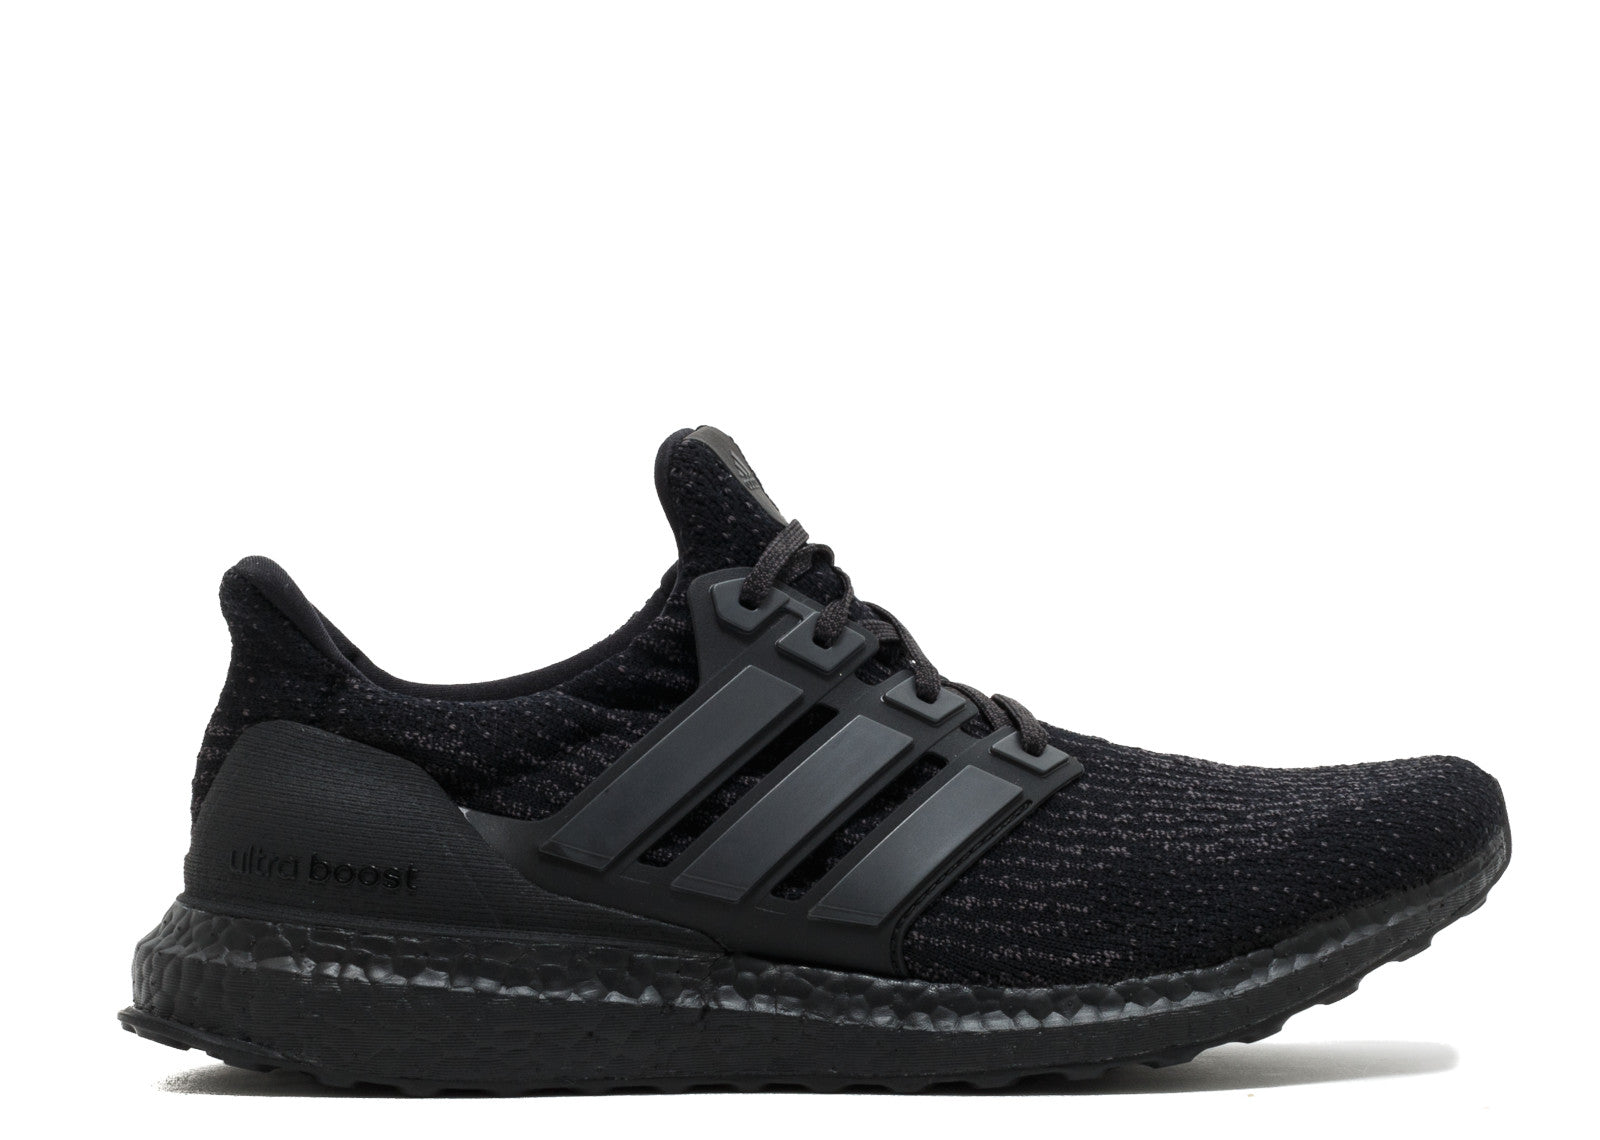 f18f82303d348 Adidas Ultra Boost Triple Black 2.0 – Street Sole